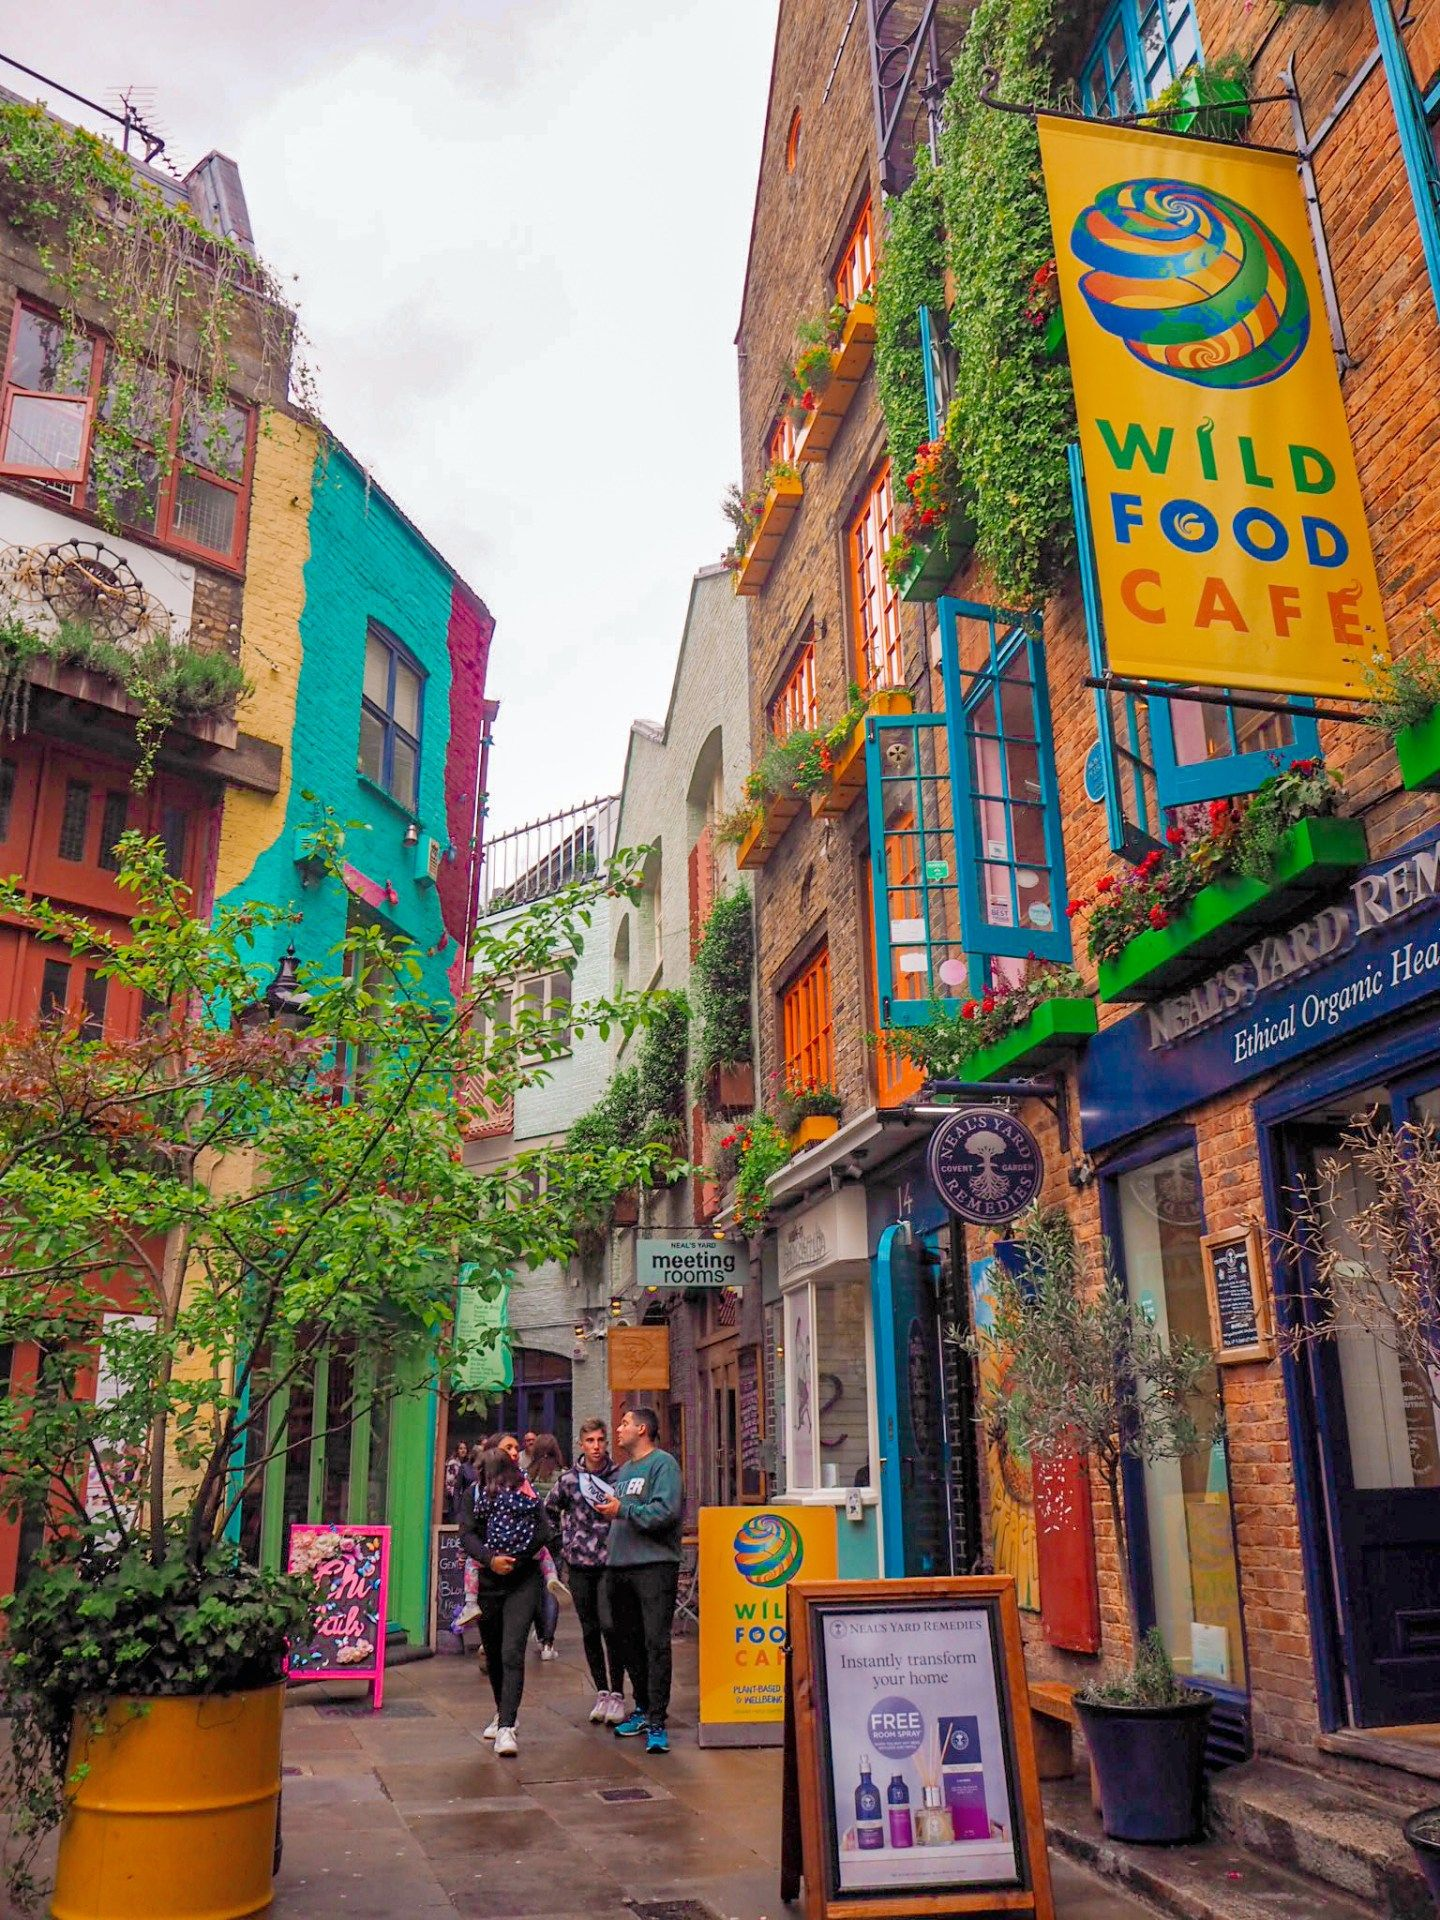 29 Cool Things To Do In Covent Garden, London in 2020